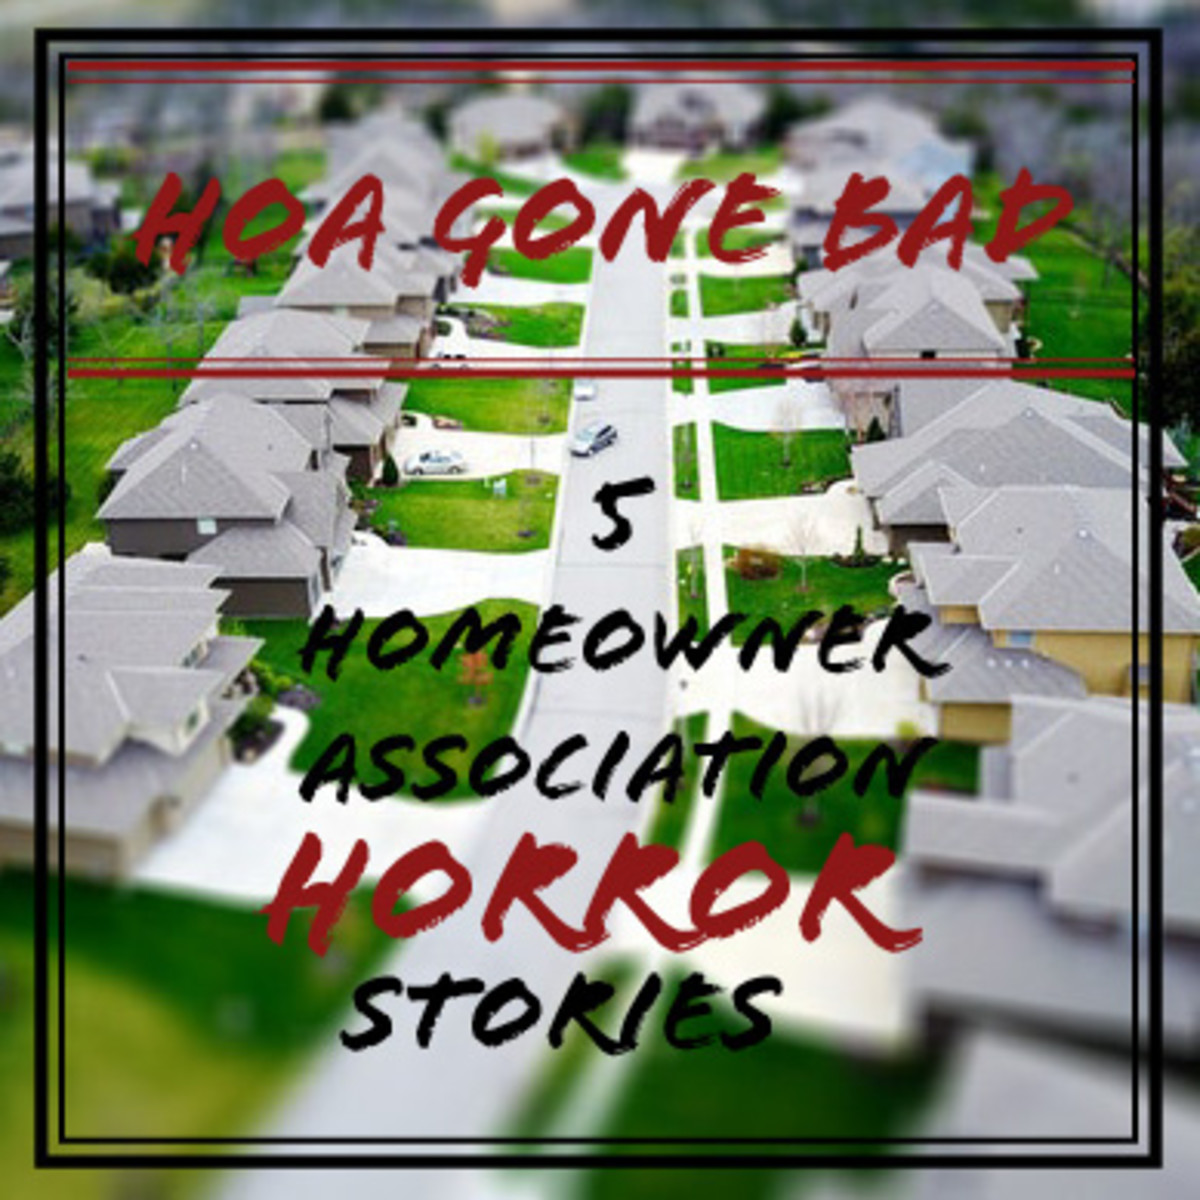 HOA Gone Bad: 5 Homeowner Association Horror Stories